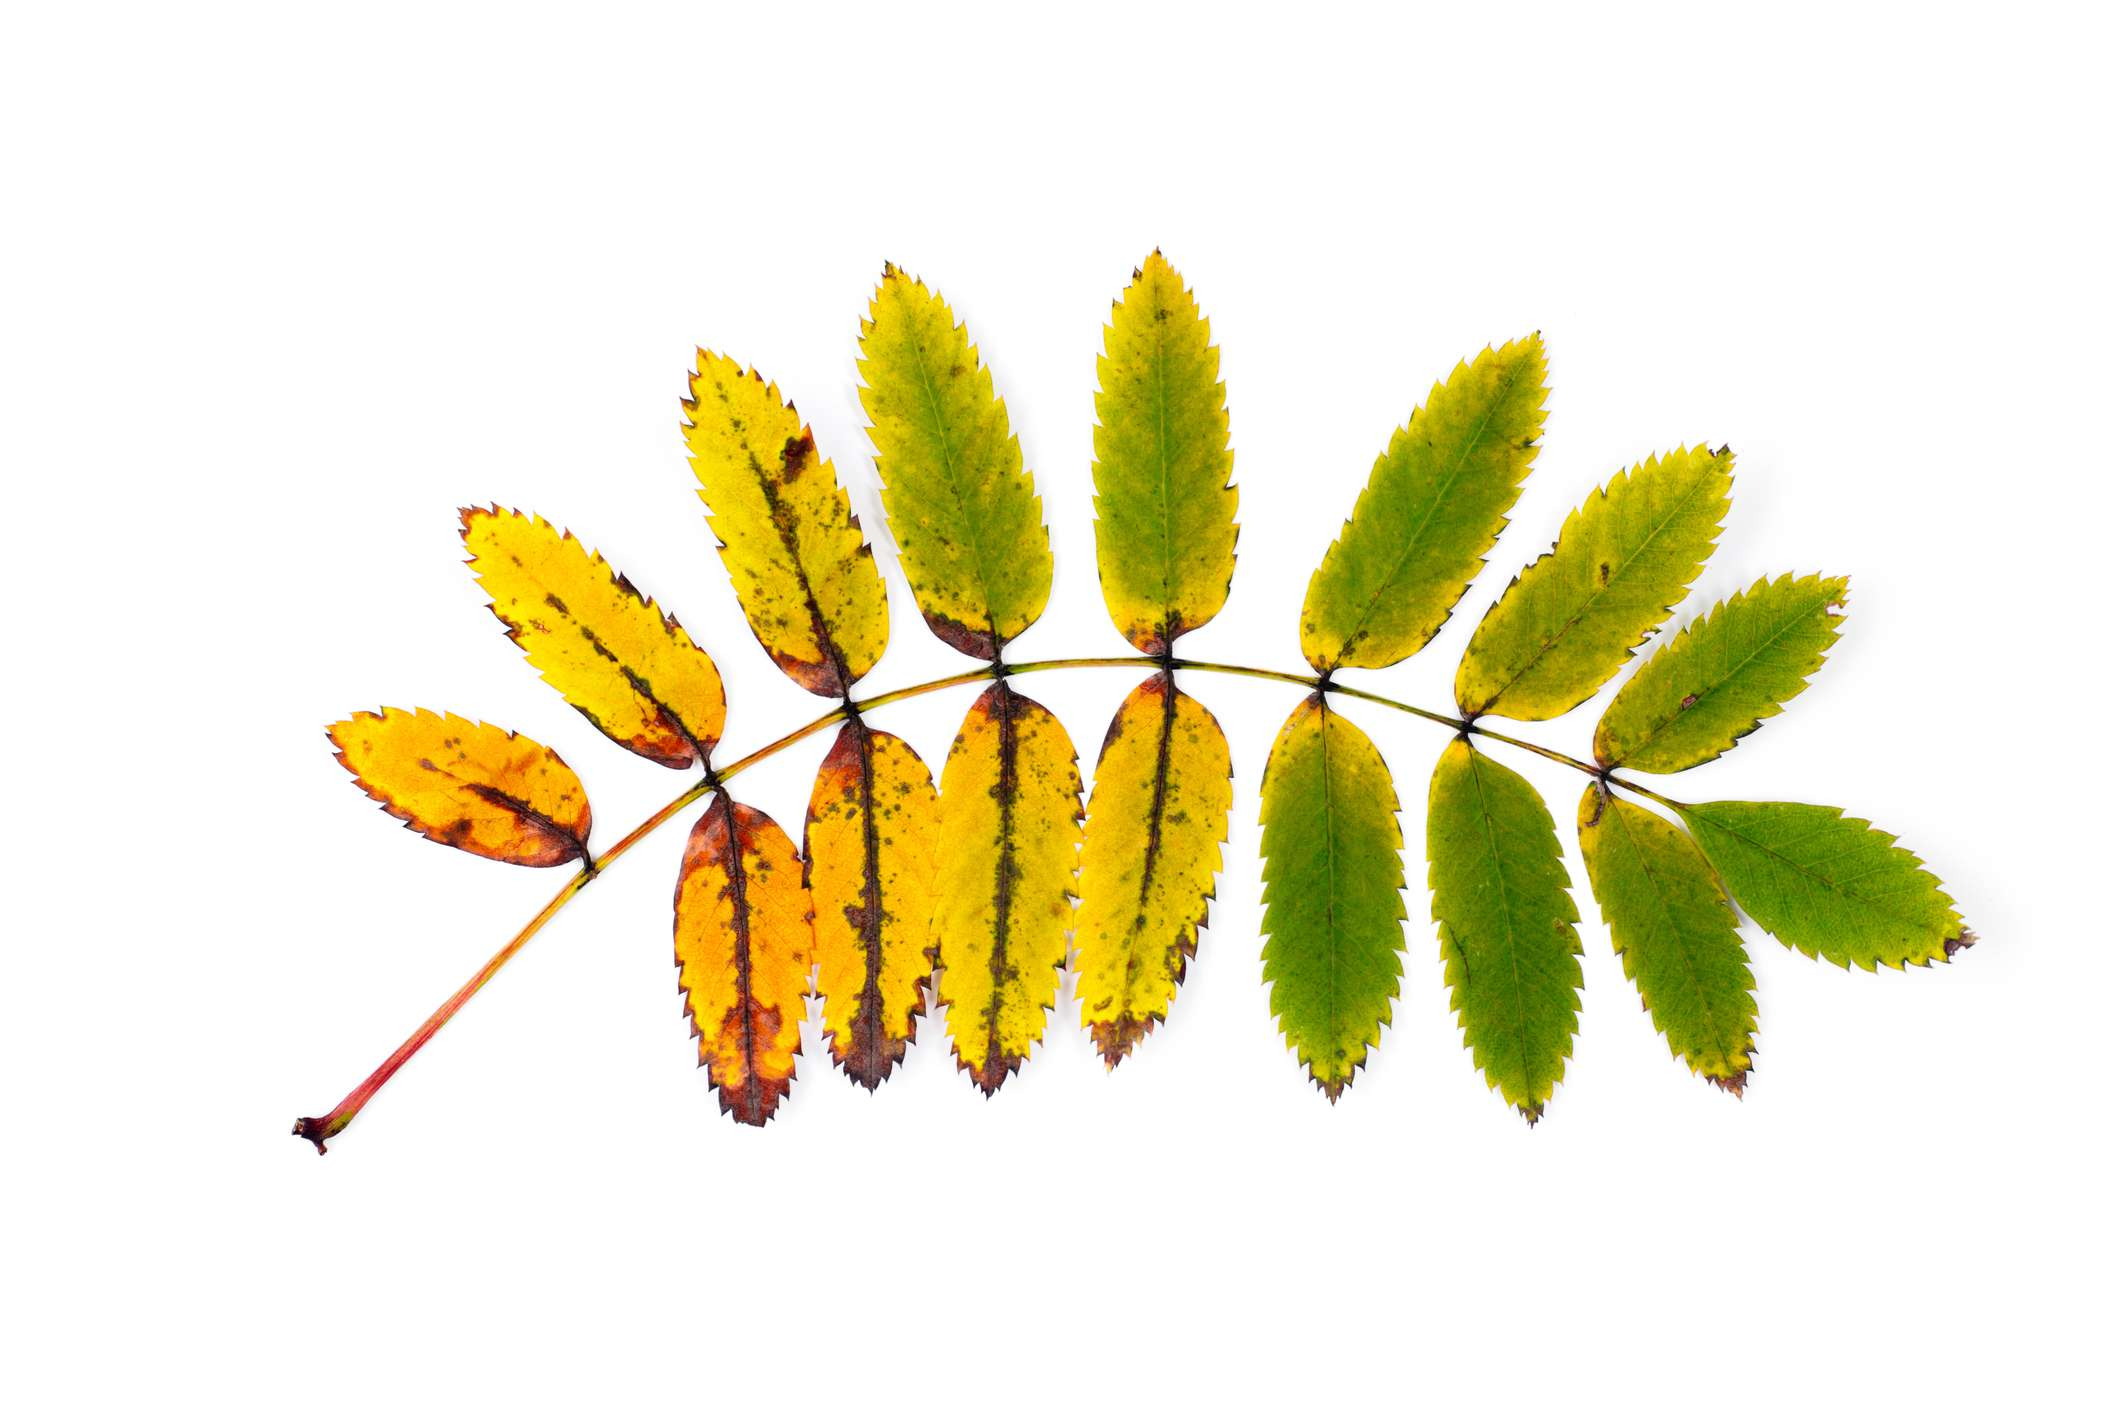 A yellowing ash leaf on a white background.